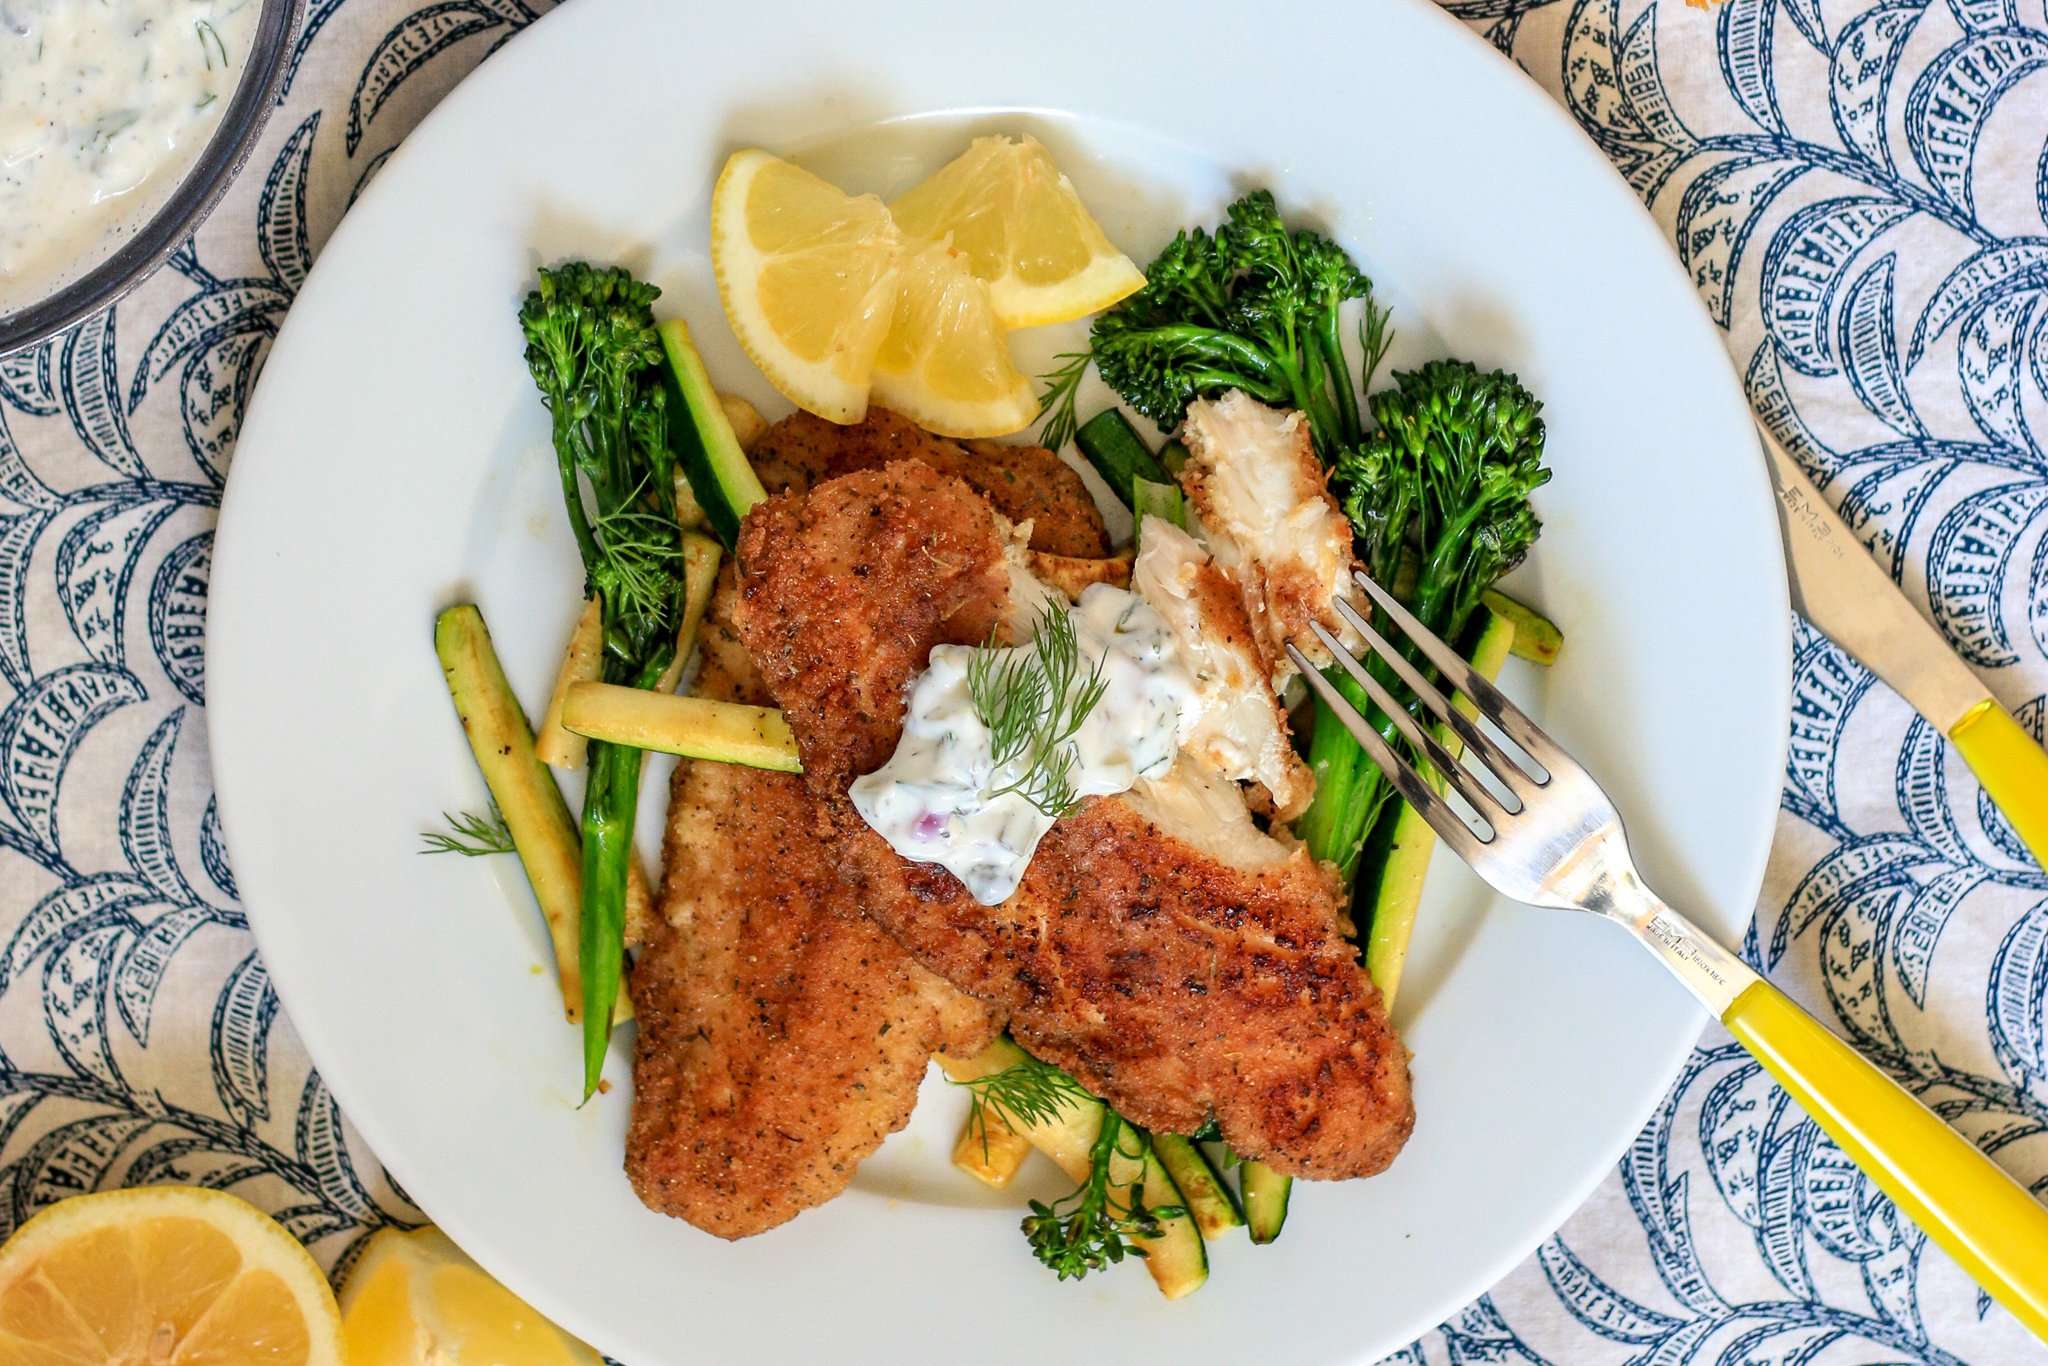 Lightened Up Tartar Sauce with Breaded Fish Fillets and Sautéed Zucchini and Broccolini